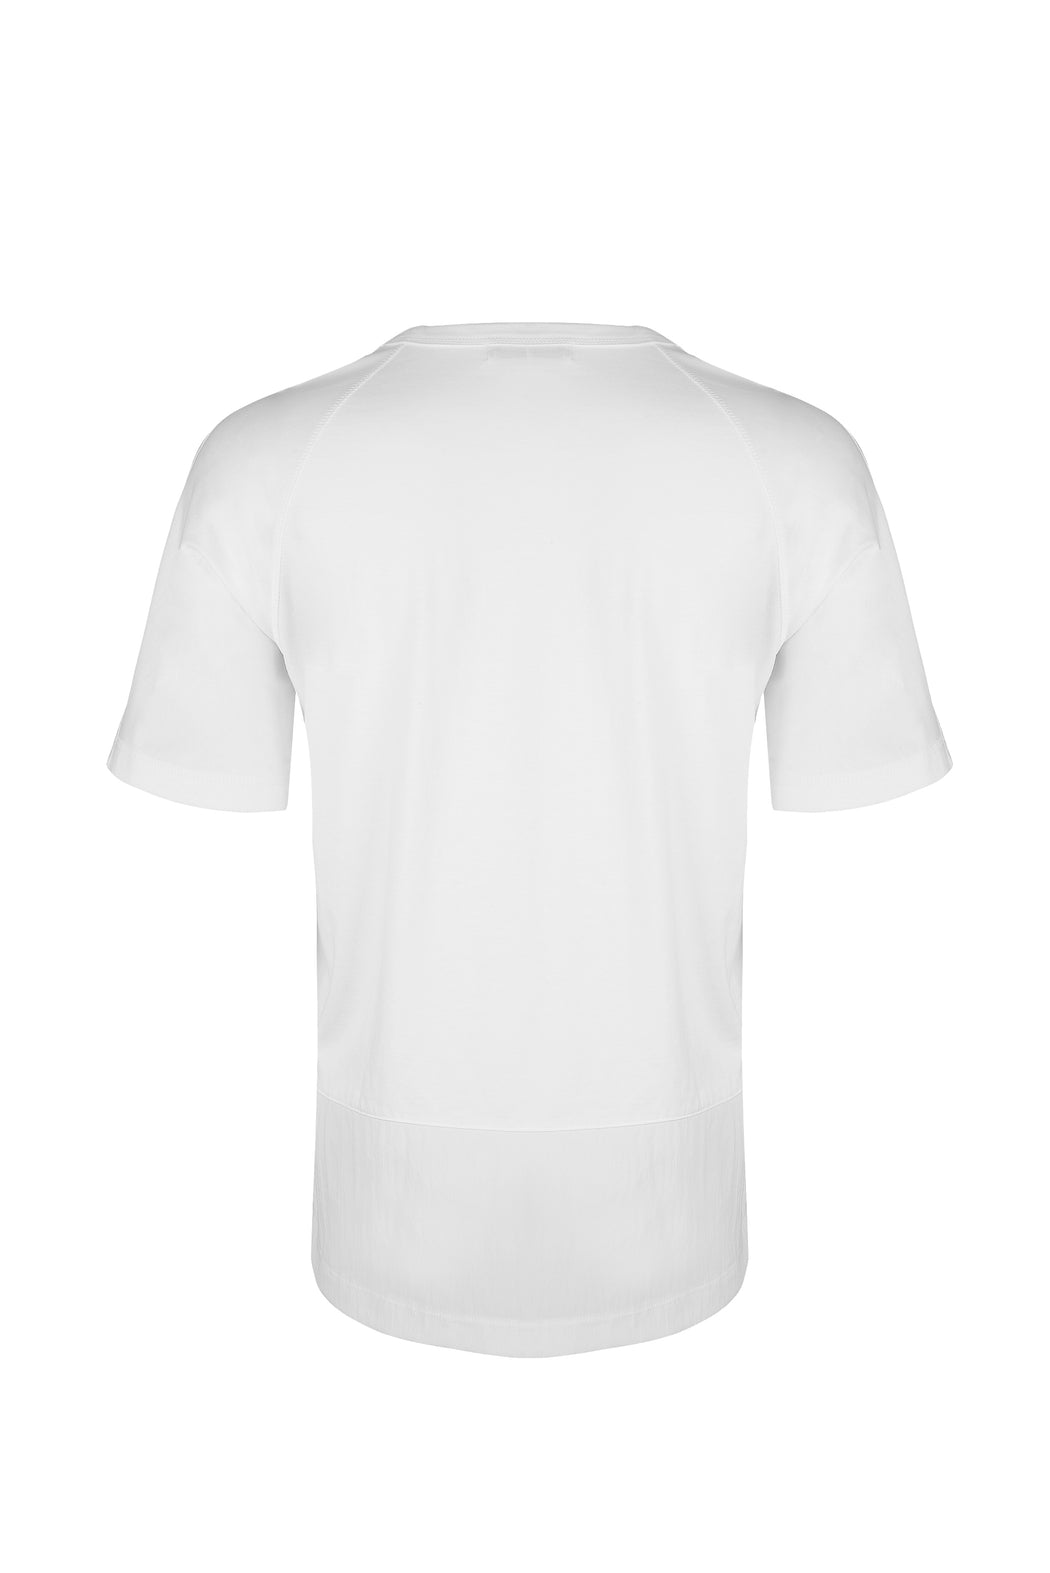 Back View of Men Pocket Blocked T-shirt, made with Supima Cotton in White